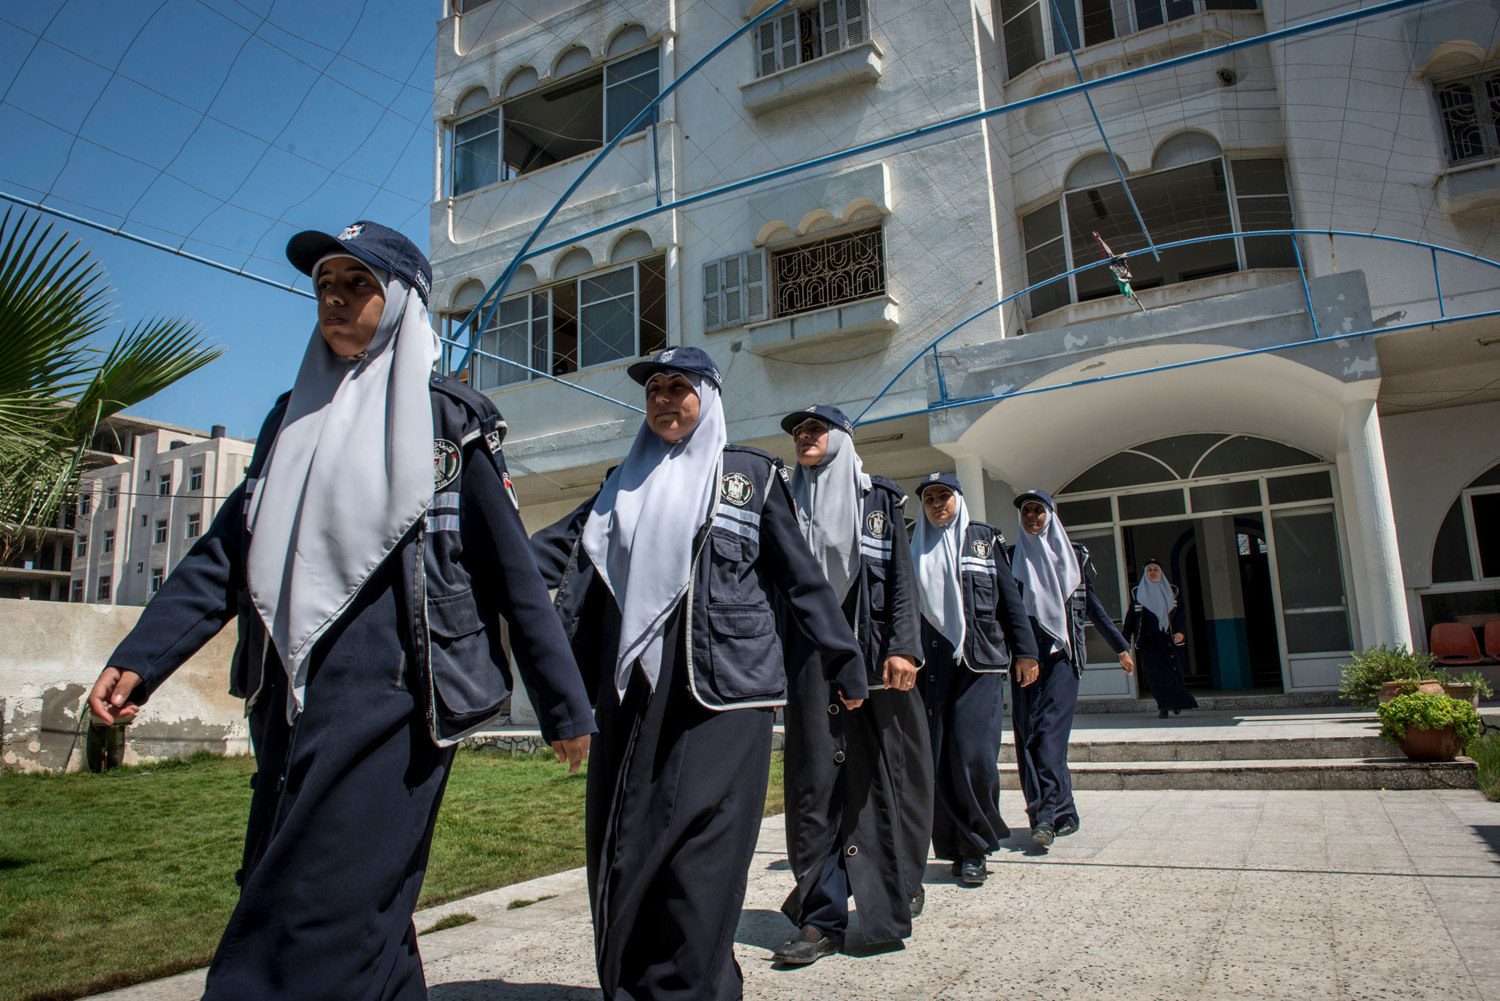 Young women train to be in the police force. Hamas prides itself on its female police force, who are helpful with domestic violence issues and law enforcement.